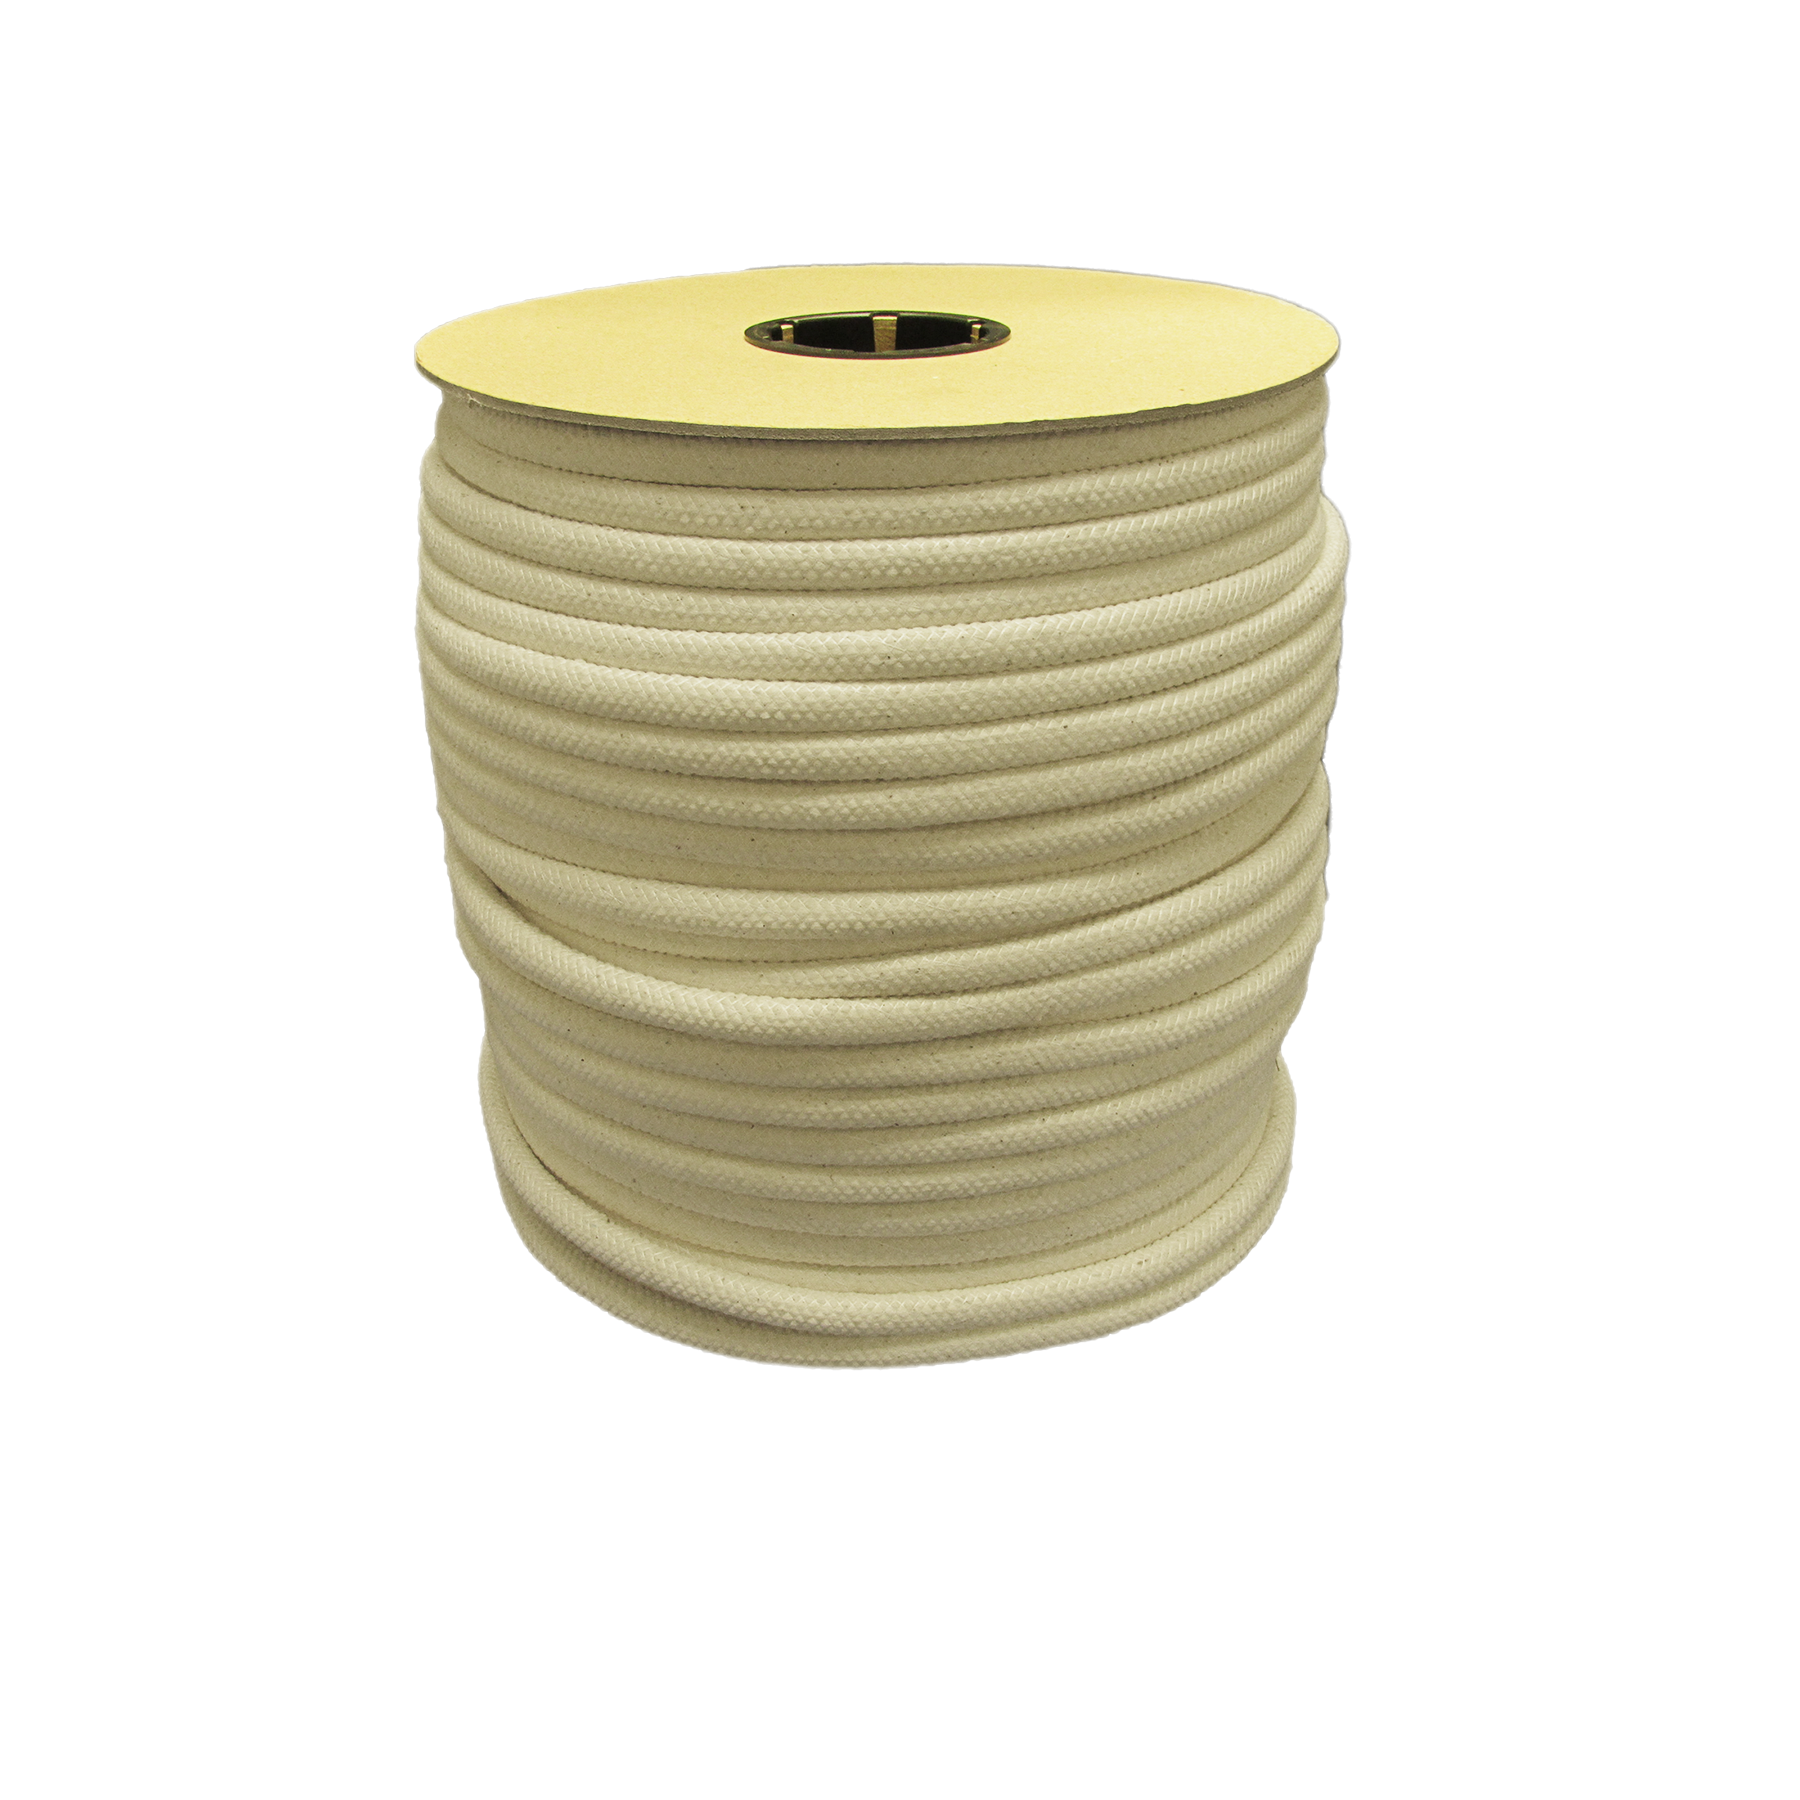 Transparent piping large. Cotton cord cording